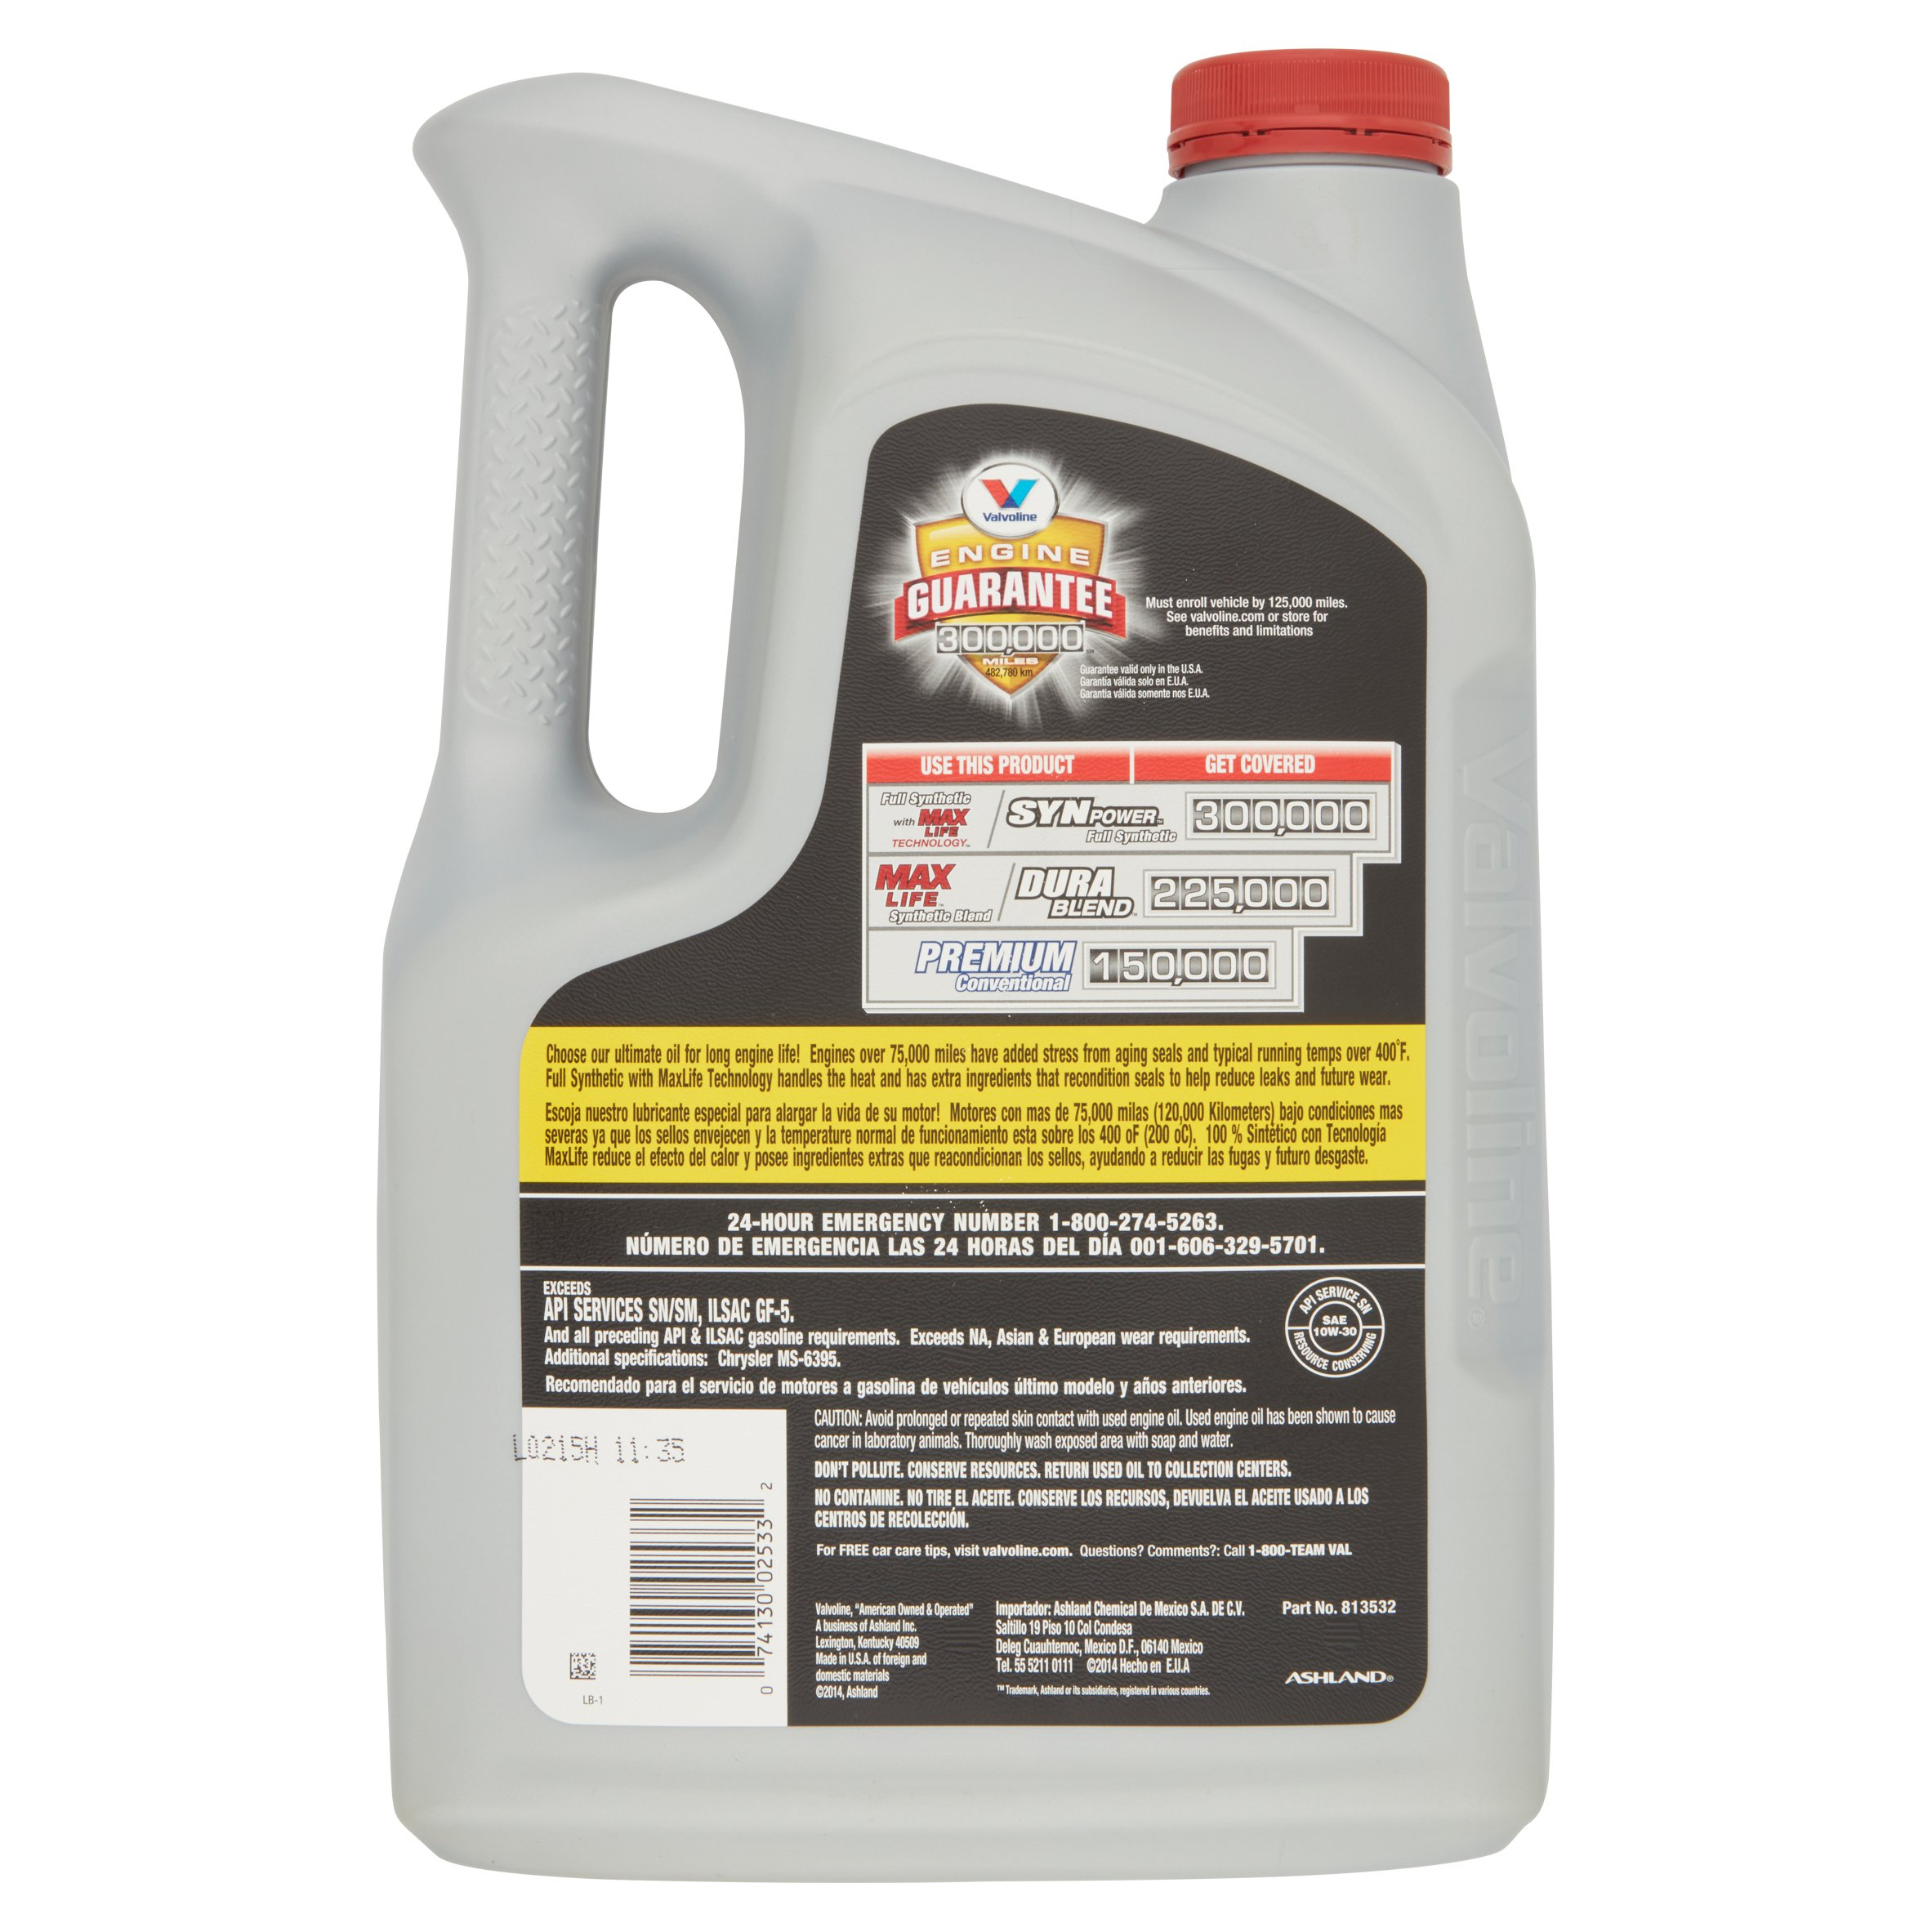 Valvoline full synthetic with max life technology 10w 30 high mileage motor oil 5 quarts walmart com